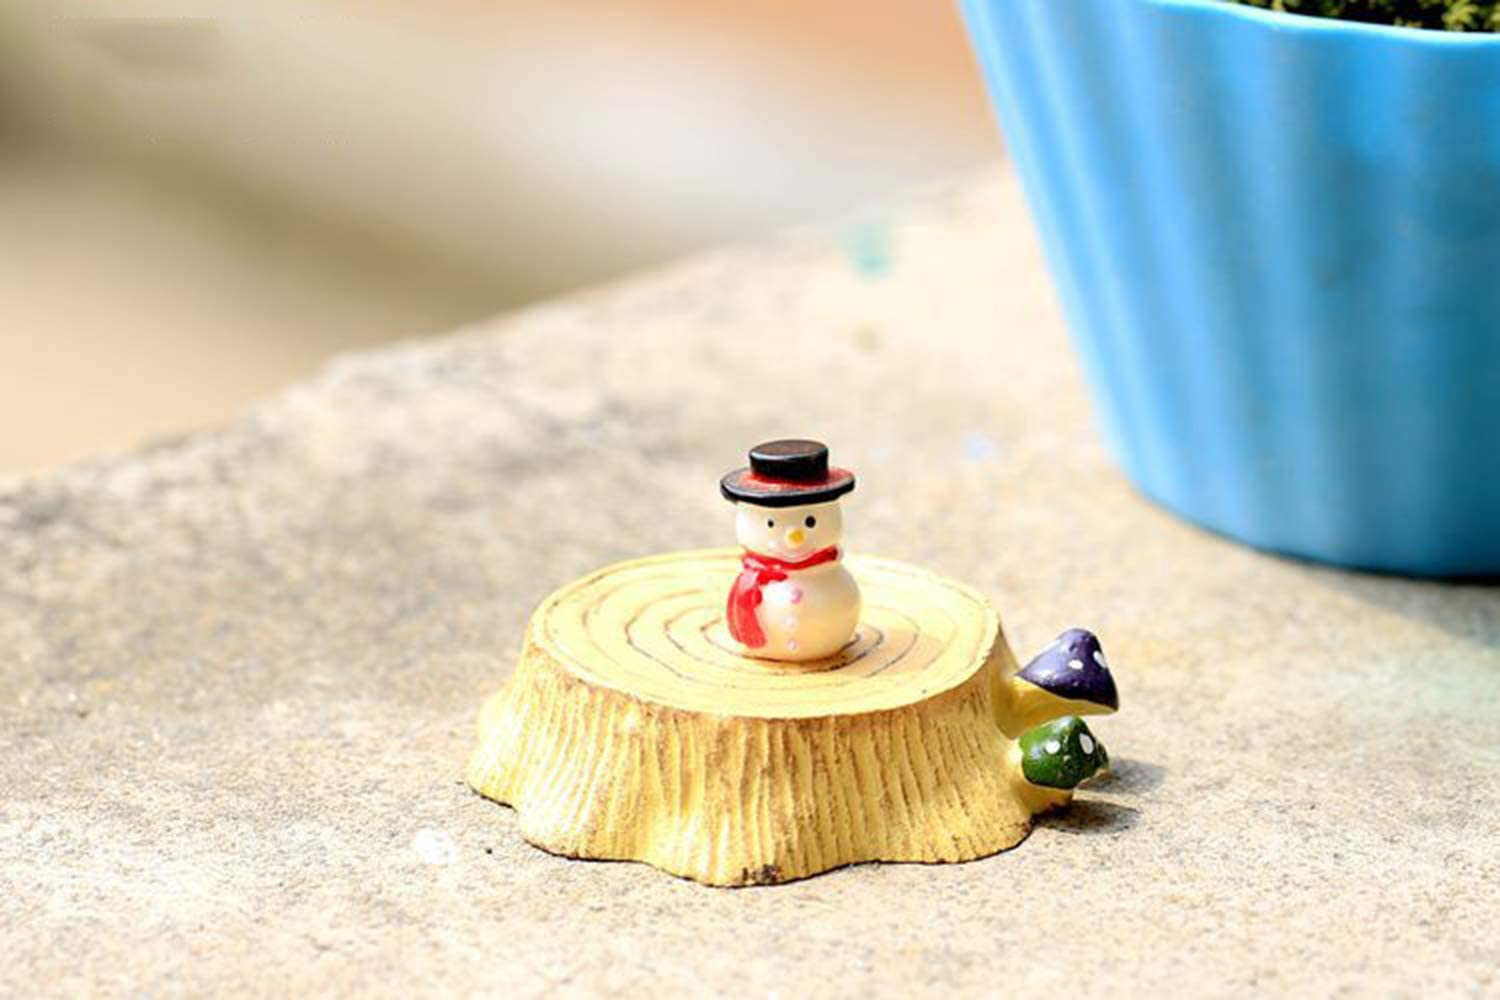 Wansan 10 Pieces Mini Snowman Christmas Decoration with Tophats for Holiday Decor Embellishing and Creating